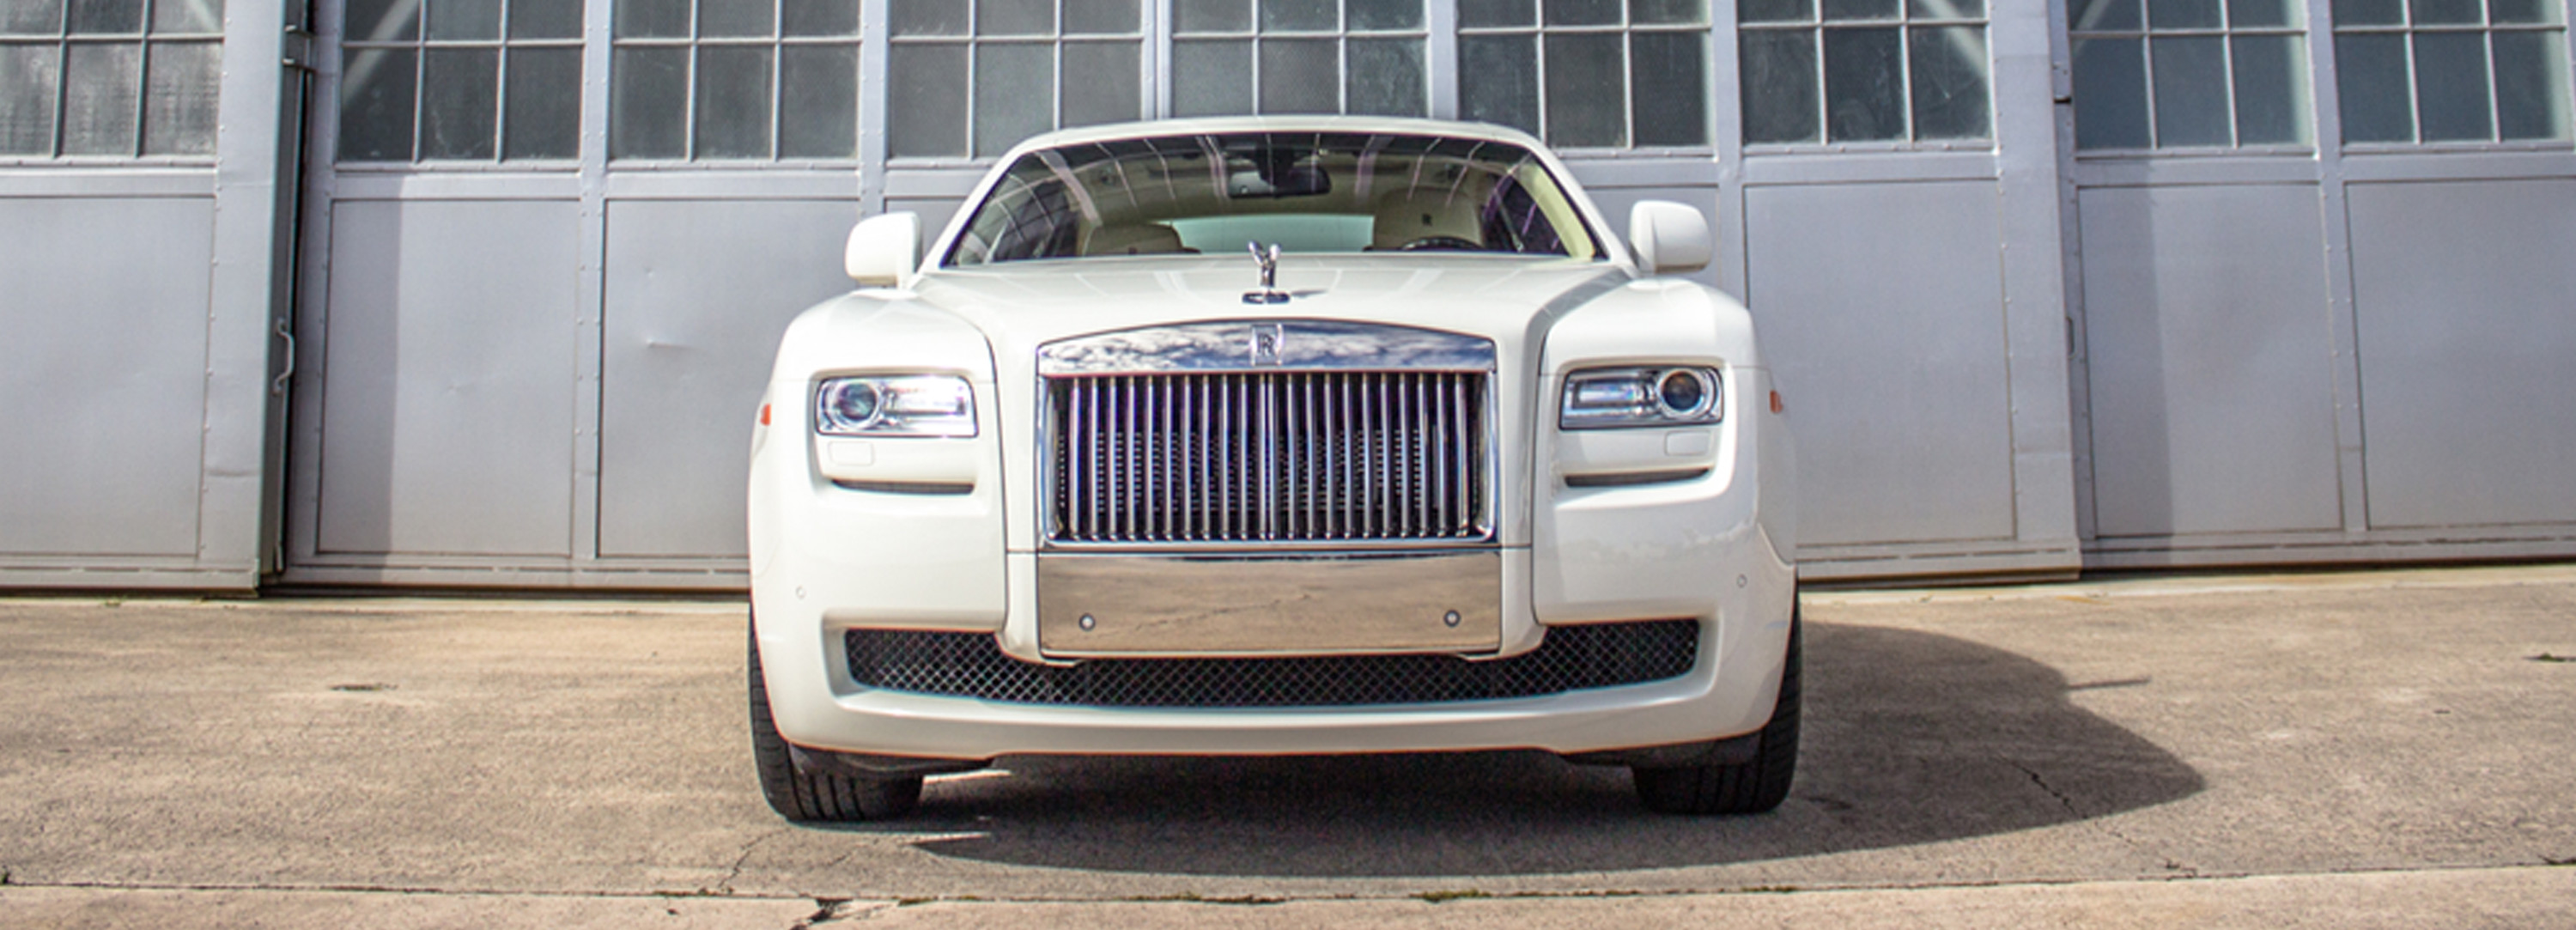 007 Rolls Royce Ghost View Of Luxury